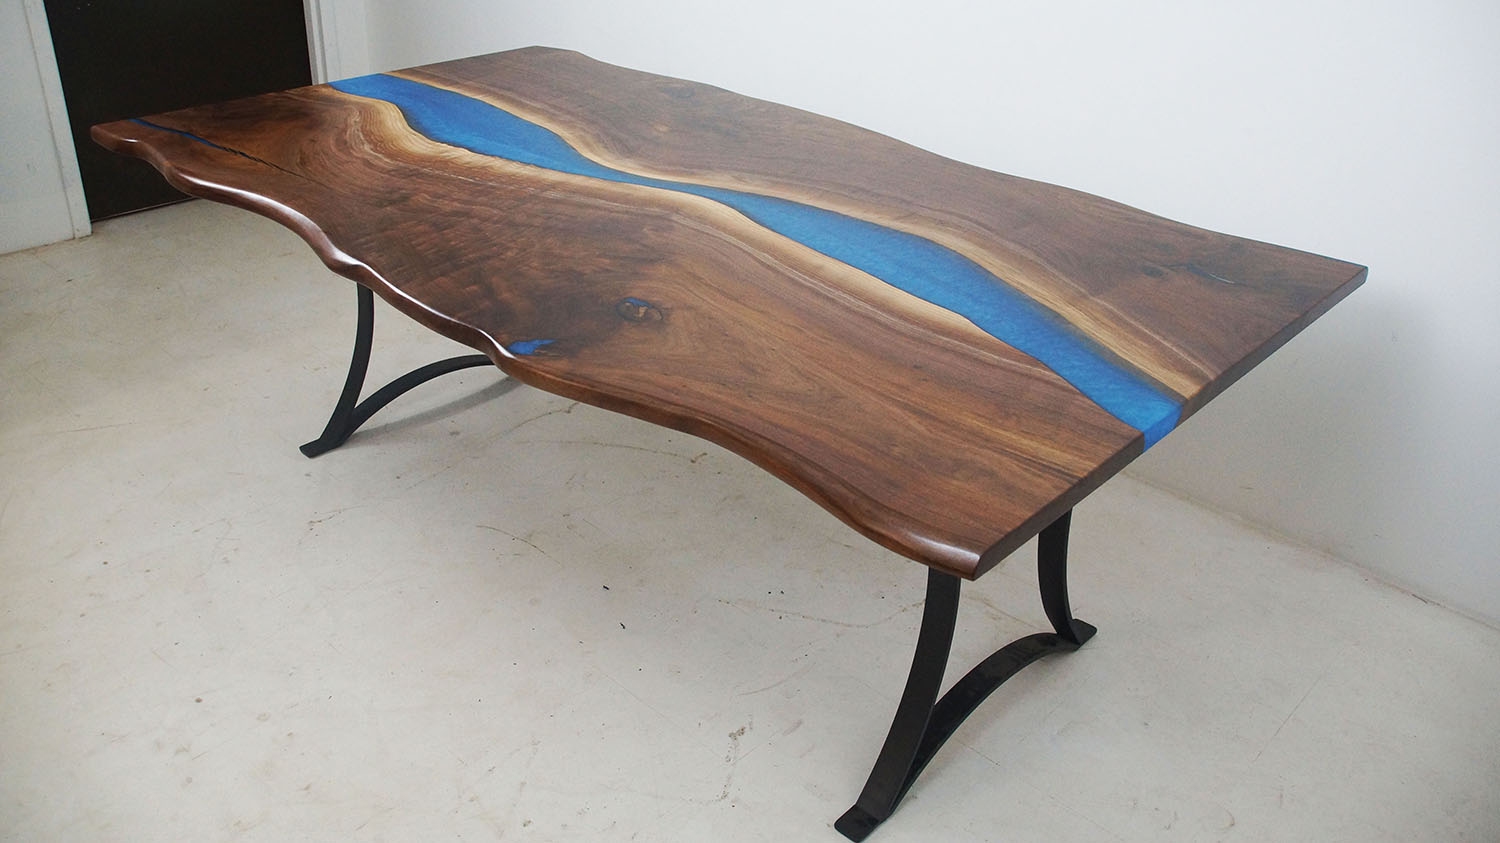 Live Edge Walnut Conference Table With Blue River